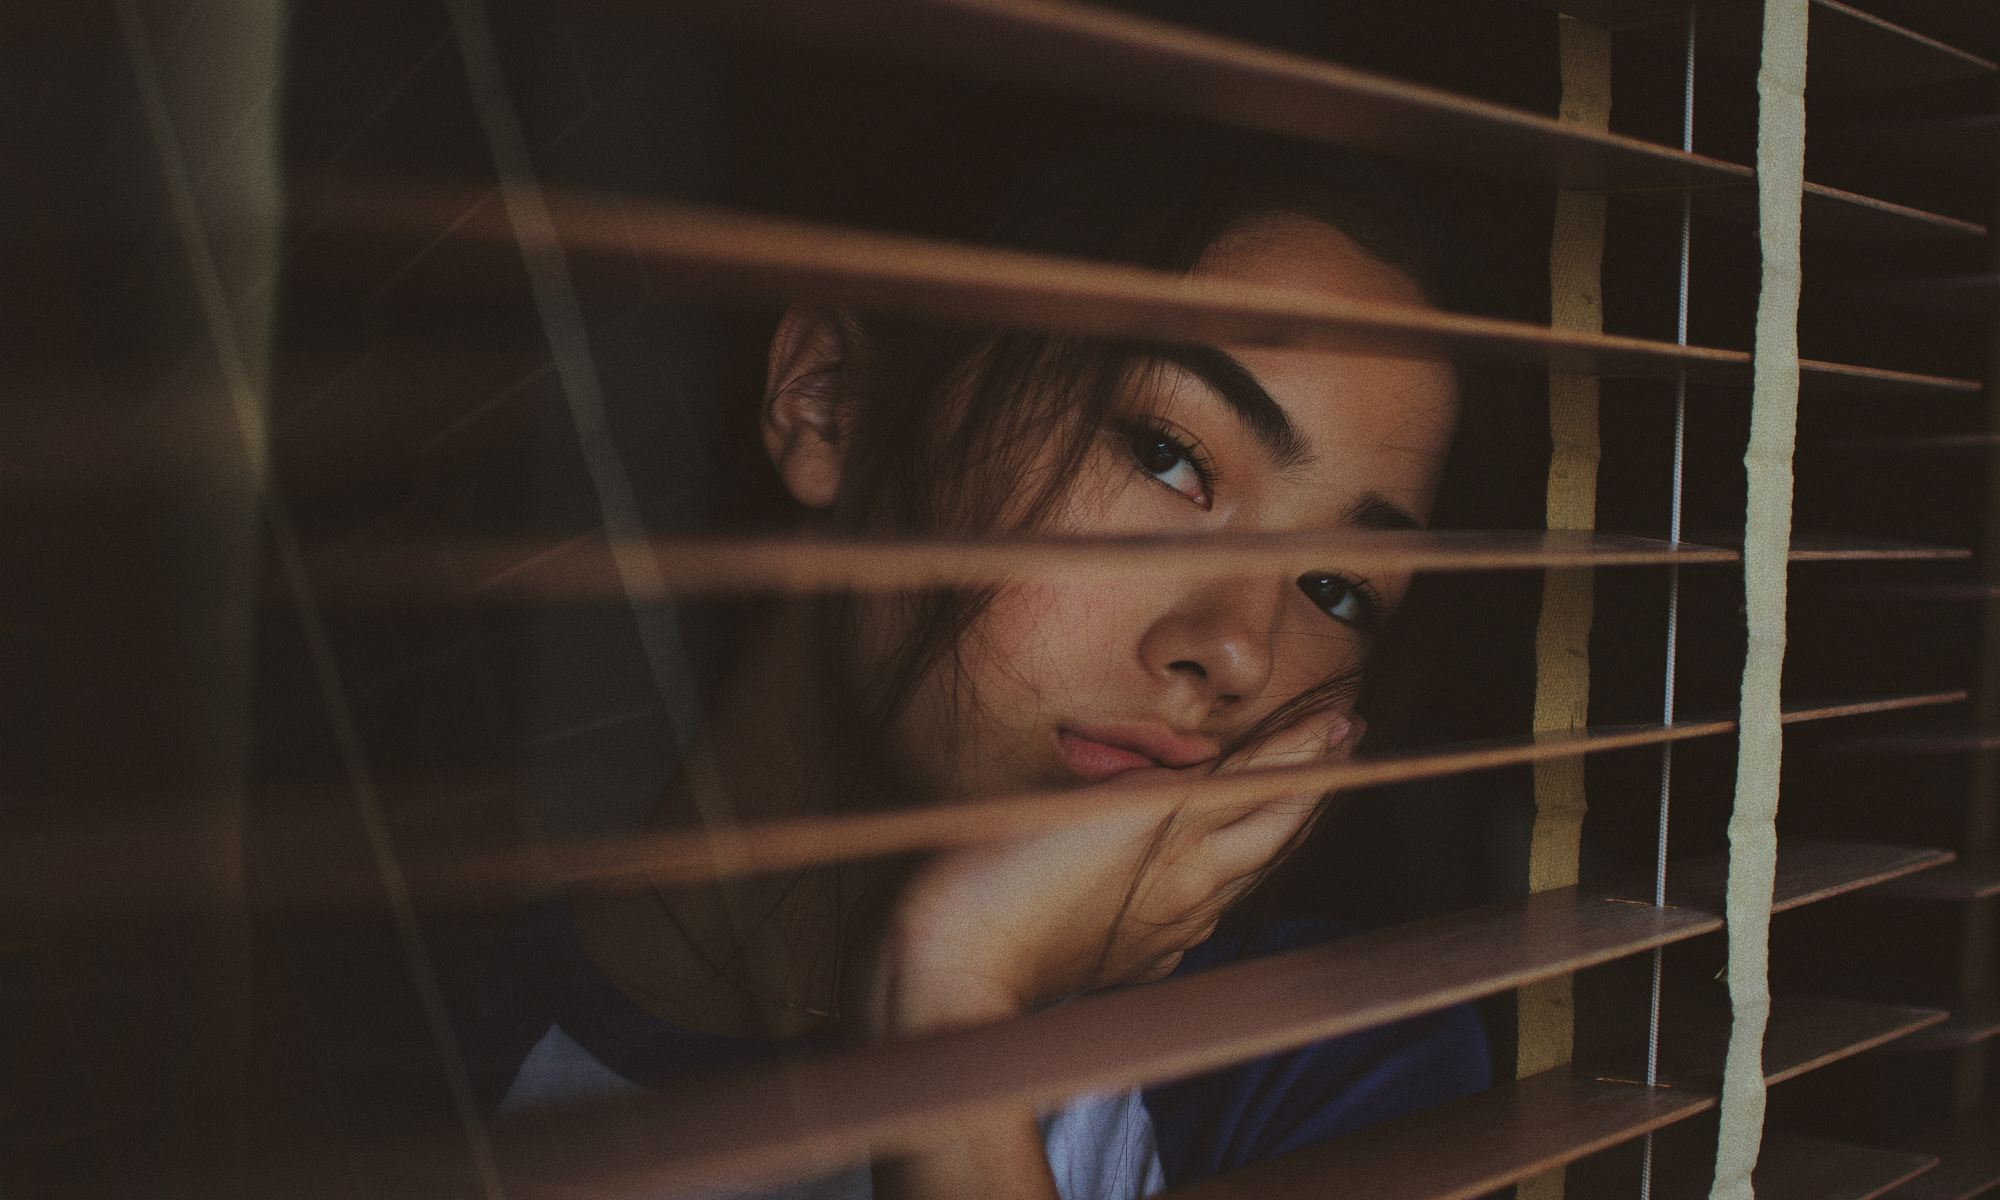 Young asian lady bored and staring out the window